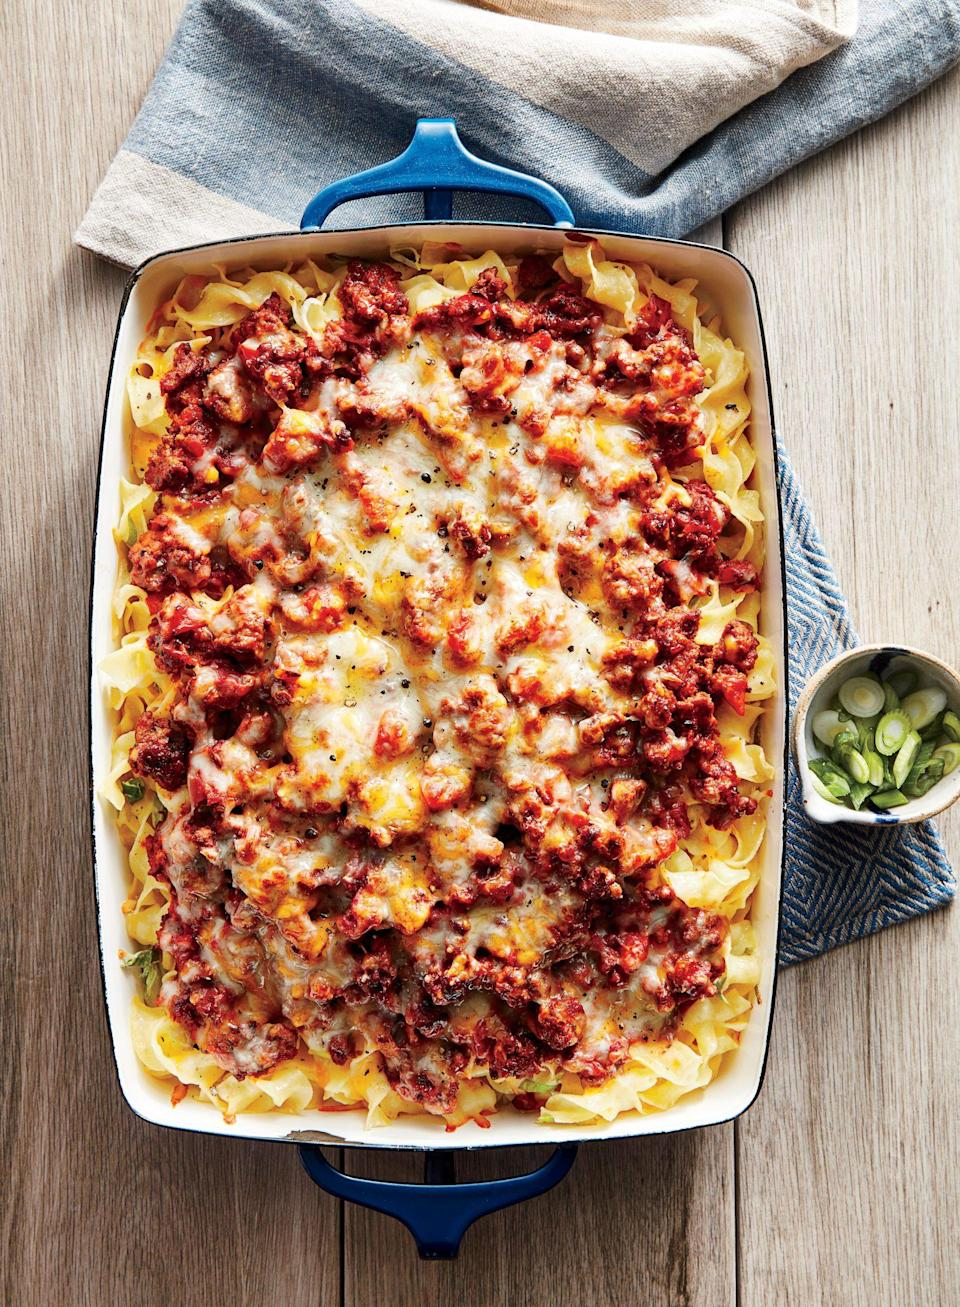 """<p><strong>Recipe: <a href=""""https://www.southernliving.com/recipes/homestyle-ground-beef-casserole-recipe"""" rel=""""nofollow noopener"""" target=""""_blank"""" data-ylk=""""slk:Homestlye Ground Beef Casserole"""" class=""""link rapid-noclick-resp"""">Homestlye Ground Beef Casserole</a></strong></p> <p>This ground beef recipe includes make-ahead instructions so you can keep it in the freezer for busy weeknights. </p>"""